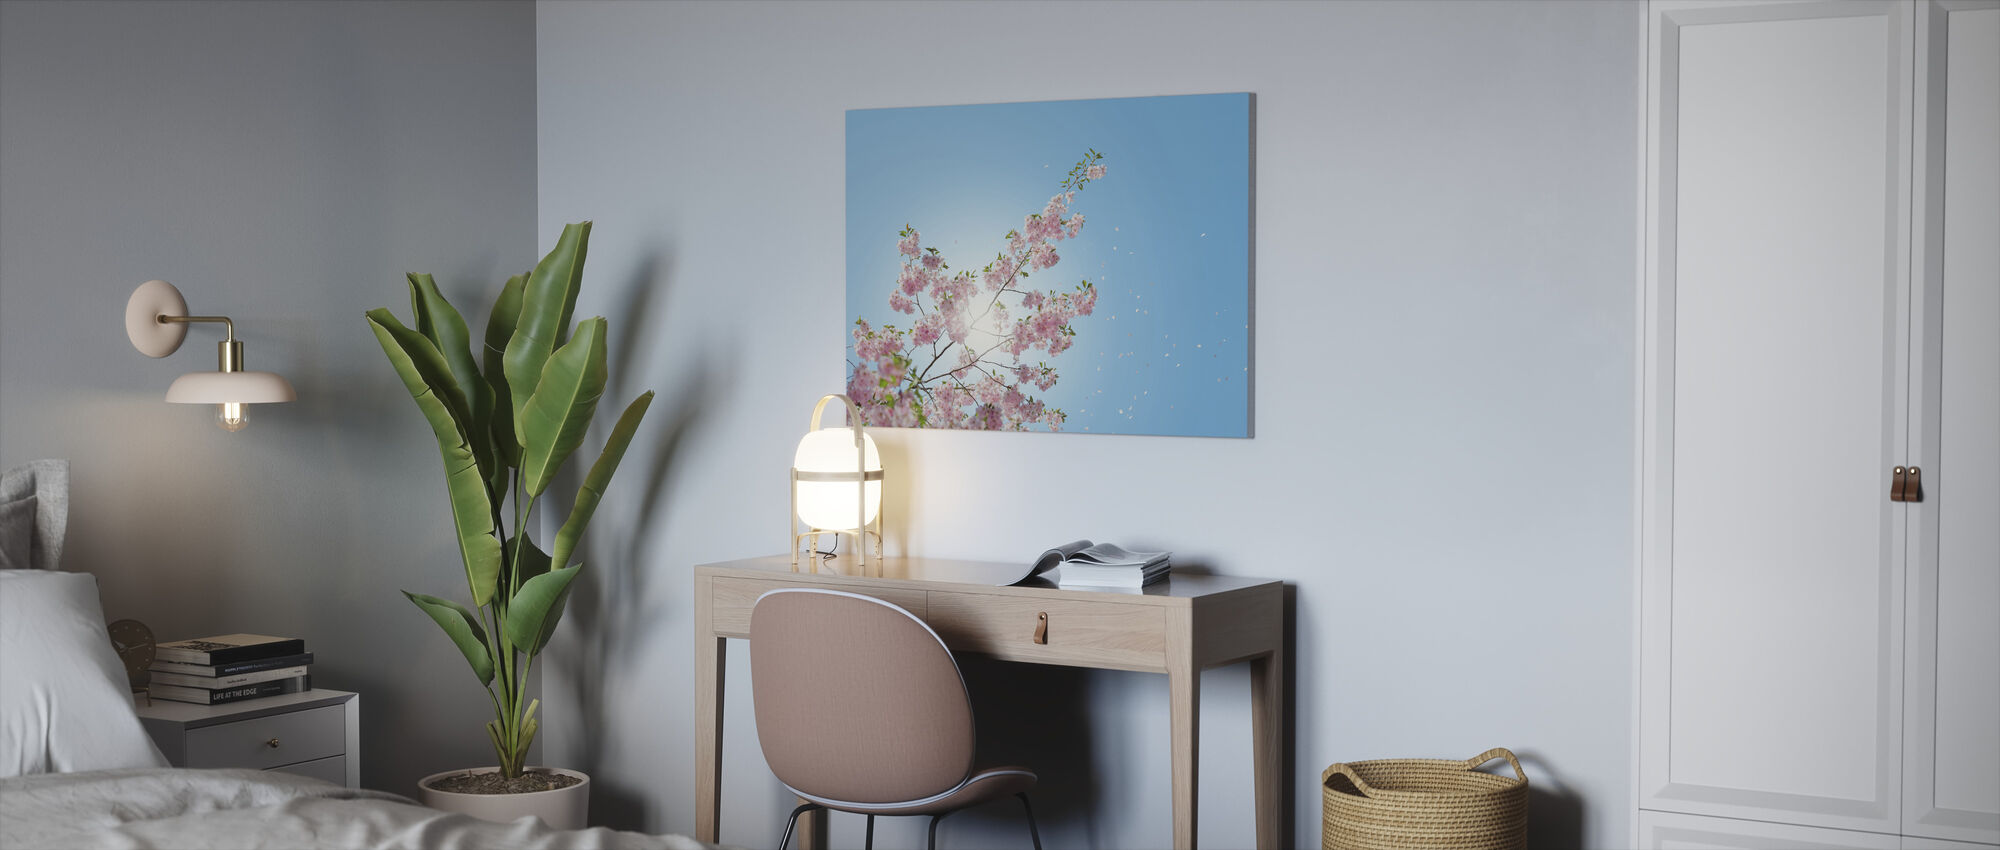 Falling Petals - Canvas print - Office